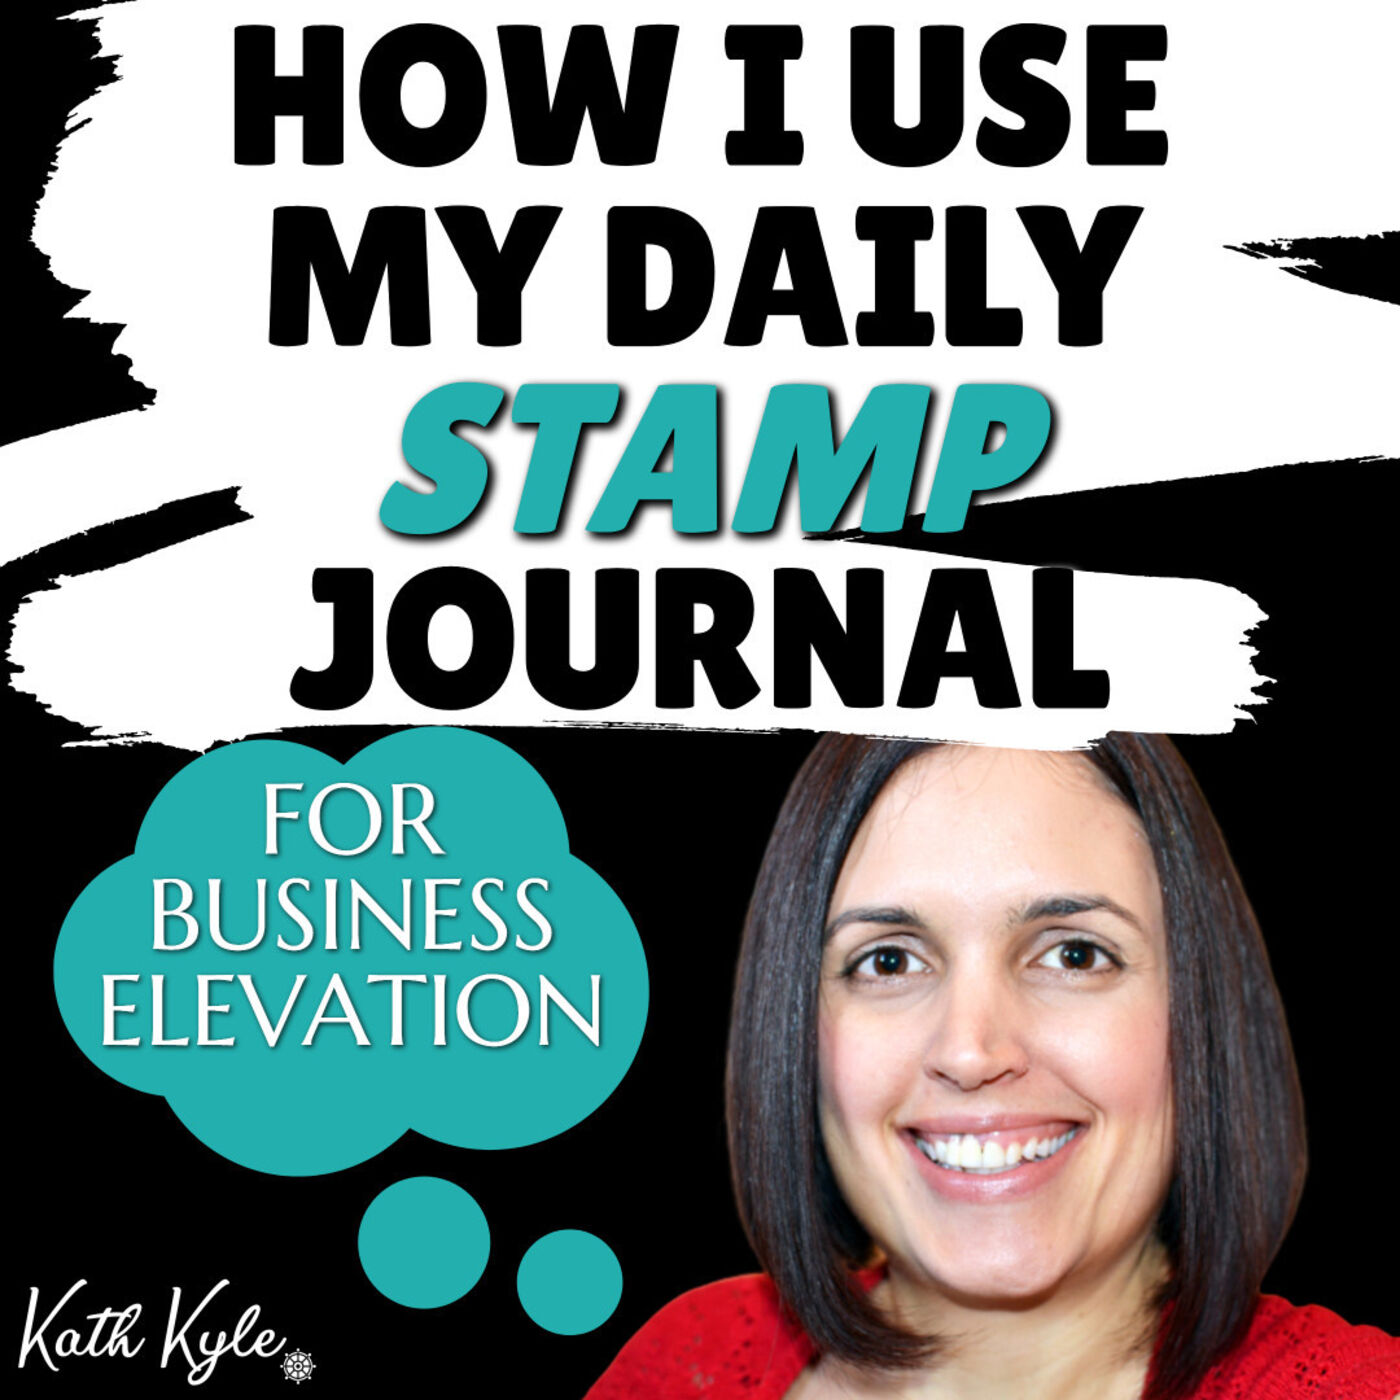 How I Use My Daily STAMP Journal For Business Elevation